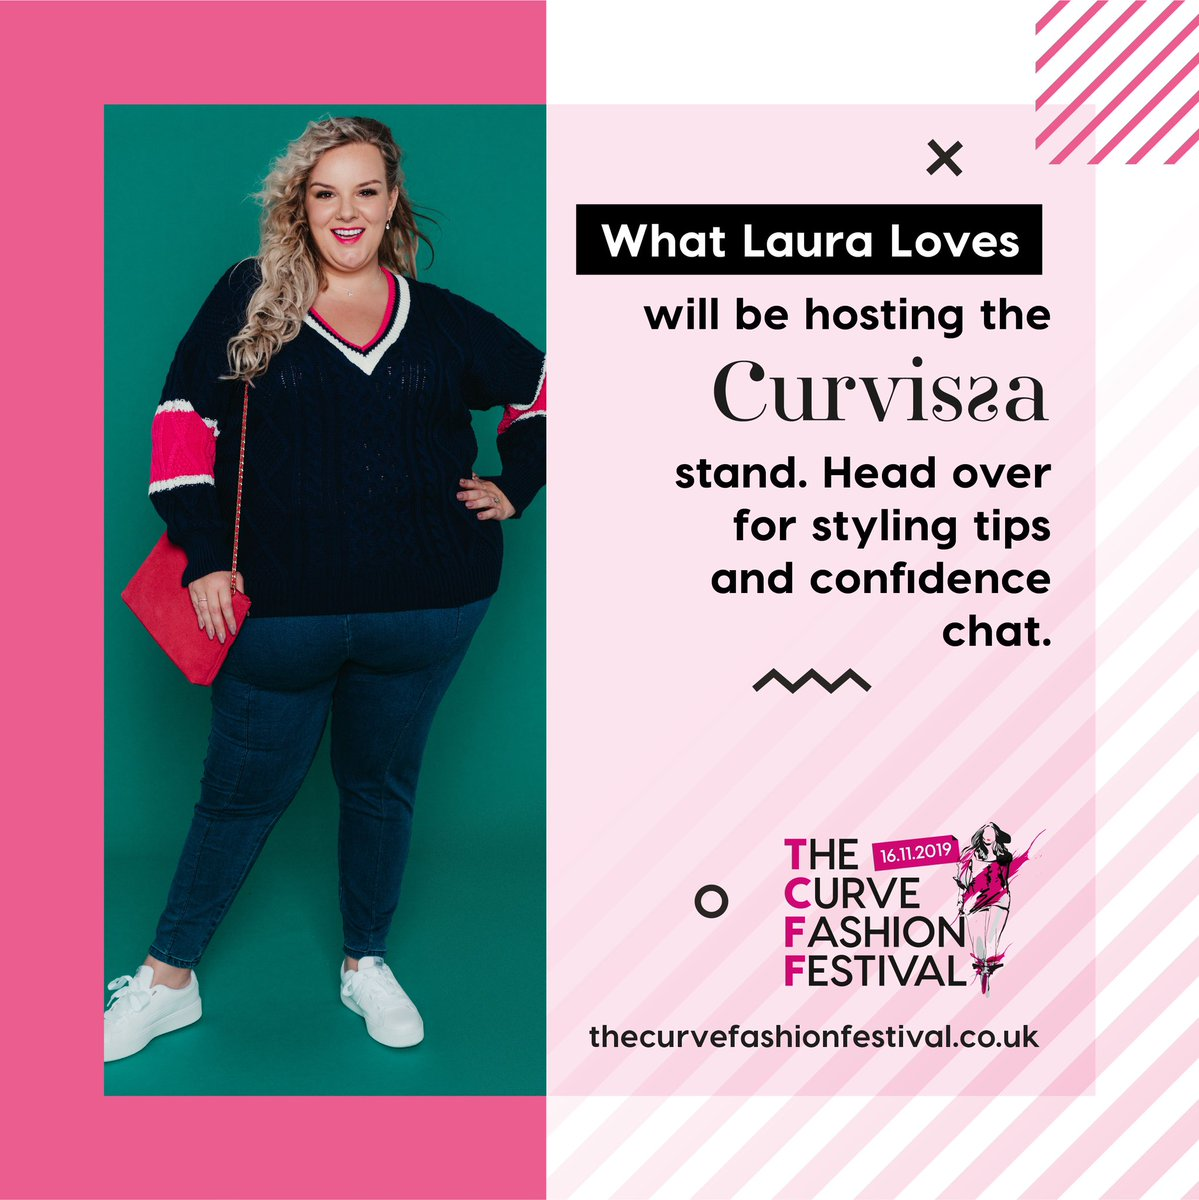 The lovely @whatlauraloves is back hosting the @Curvissa stand at #TCFF19 - have you got your tickets yet? 💕 https://t.co/EysVIbwa7y